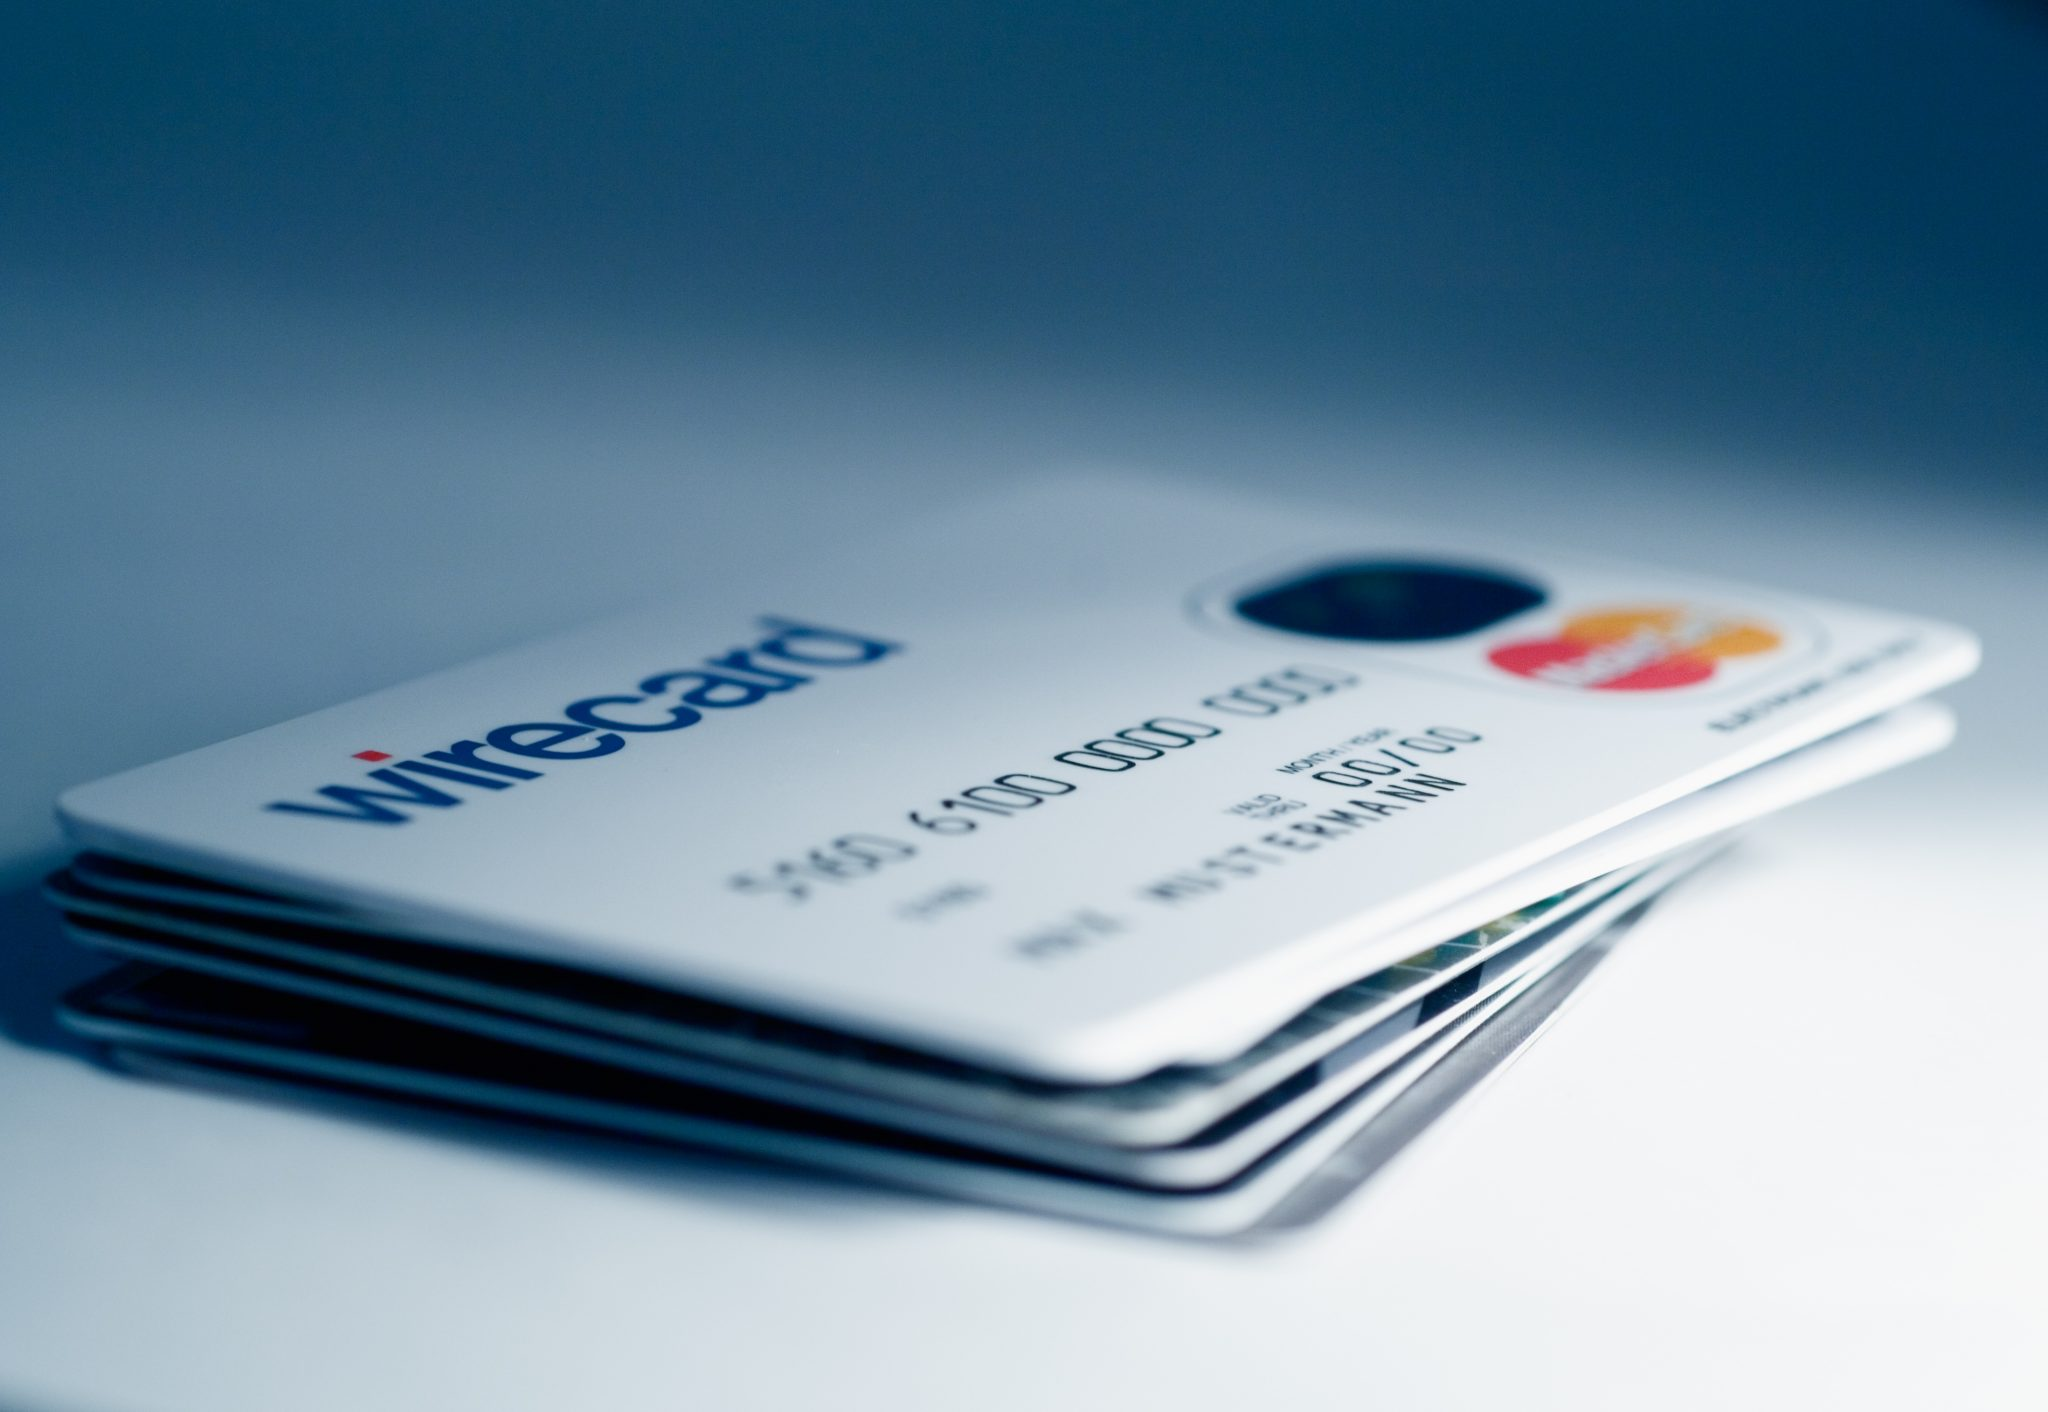 Wirecard cards